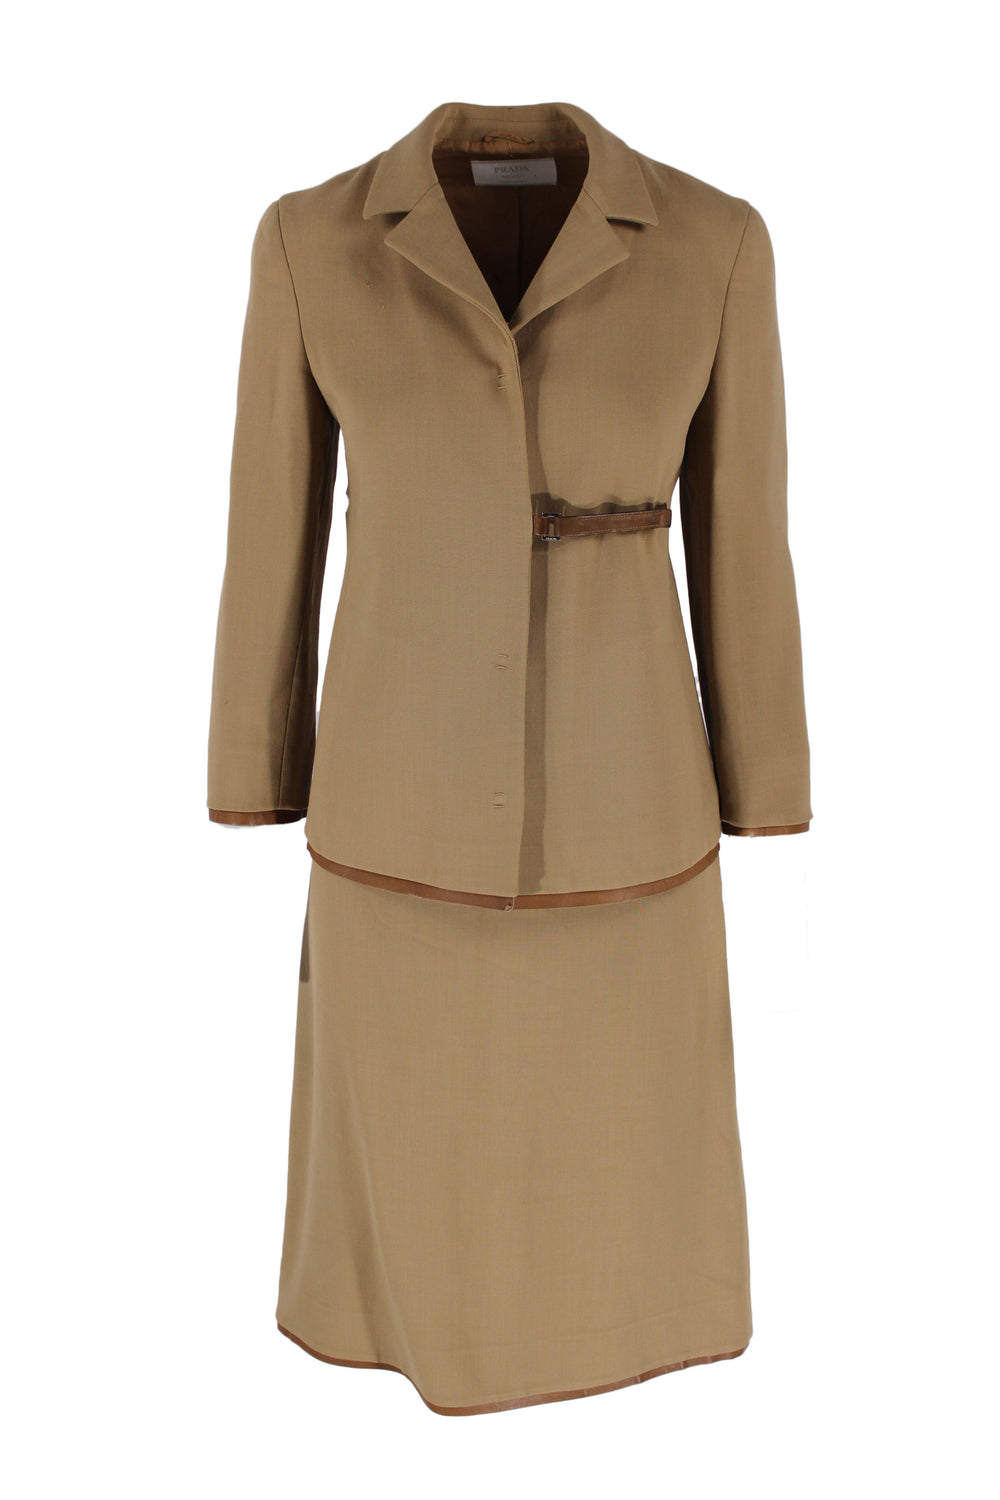 vintage prada beige two-piece suit.